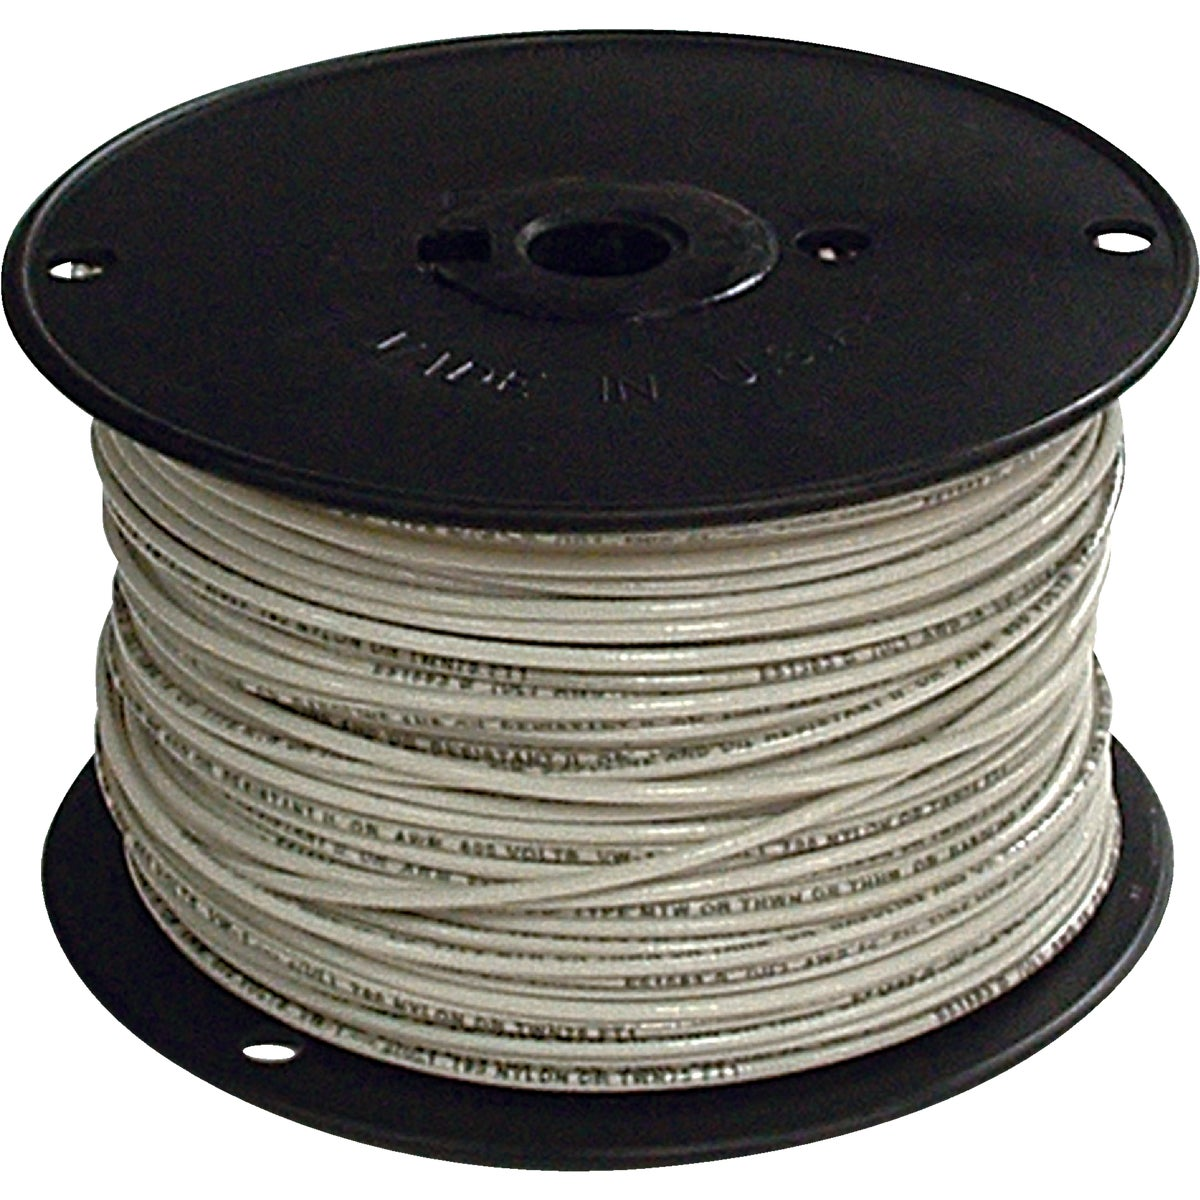 500' 14STR WHT THHN WIRE - 22956758 by Southwire Company